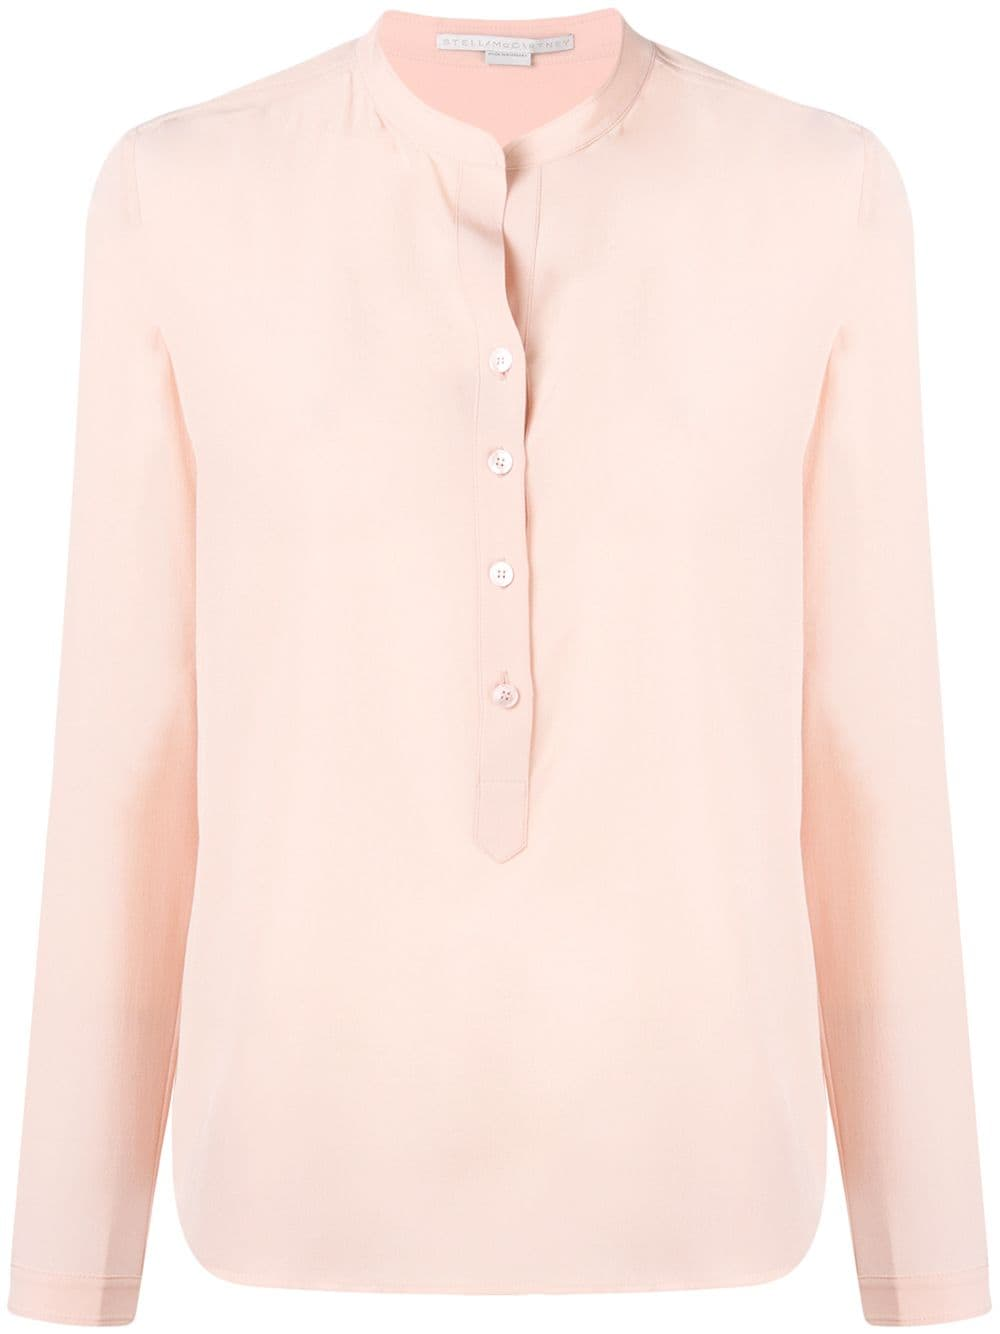 Stella McCartney band collar blouse - Pink von Stella McCartney